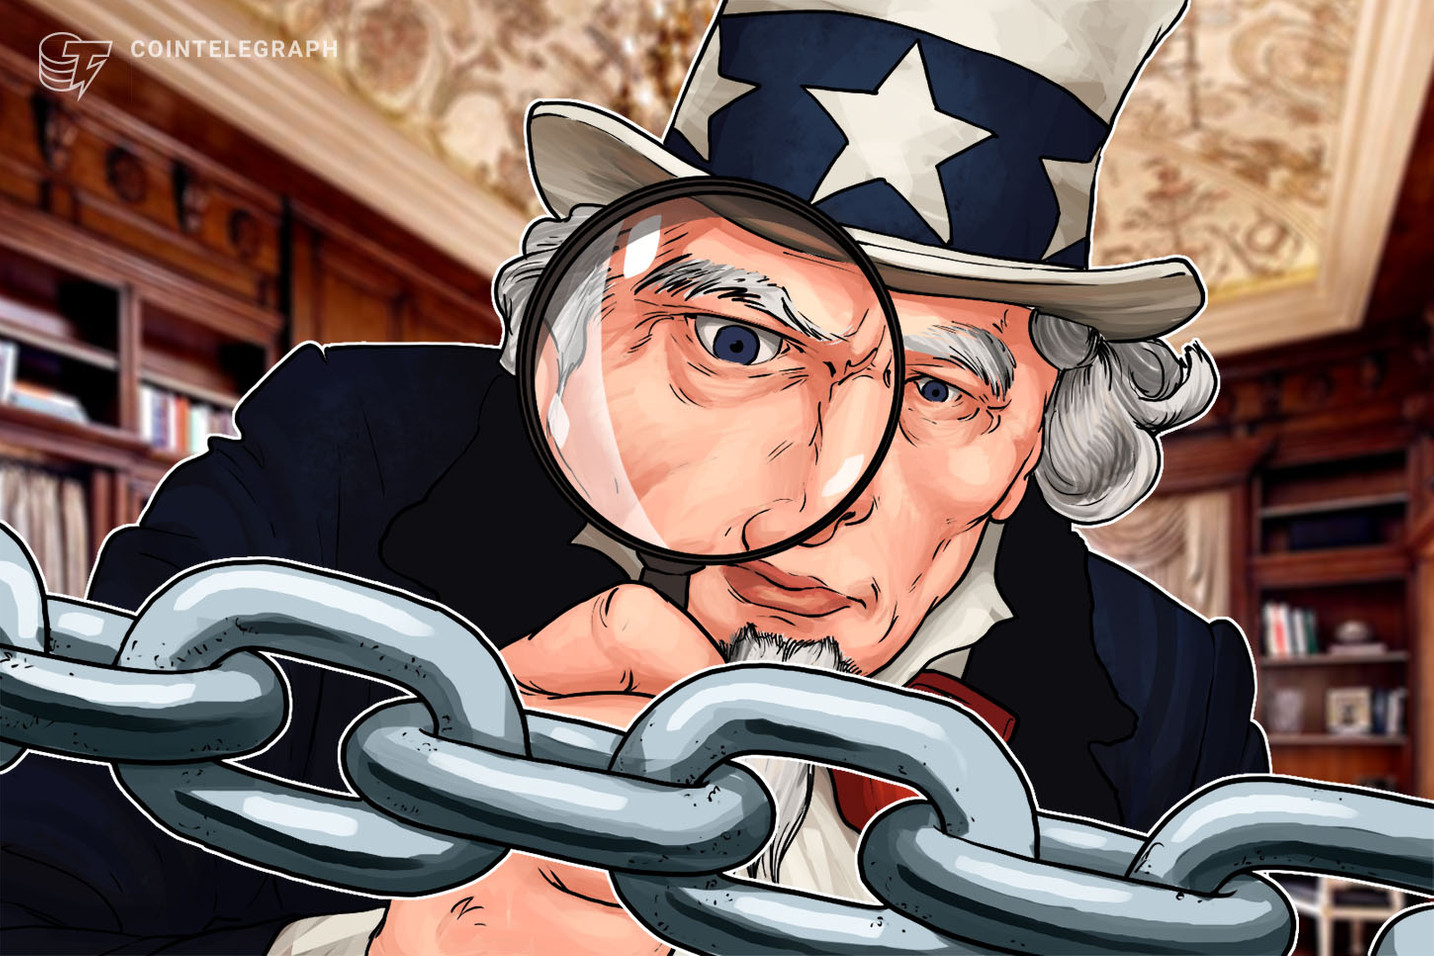 Public Records Show US Government Tripled Investment in Blockchain Analysis Firms in 2018